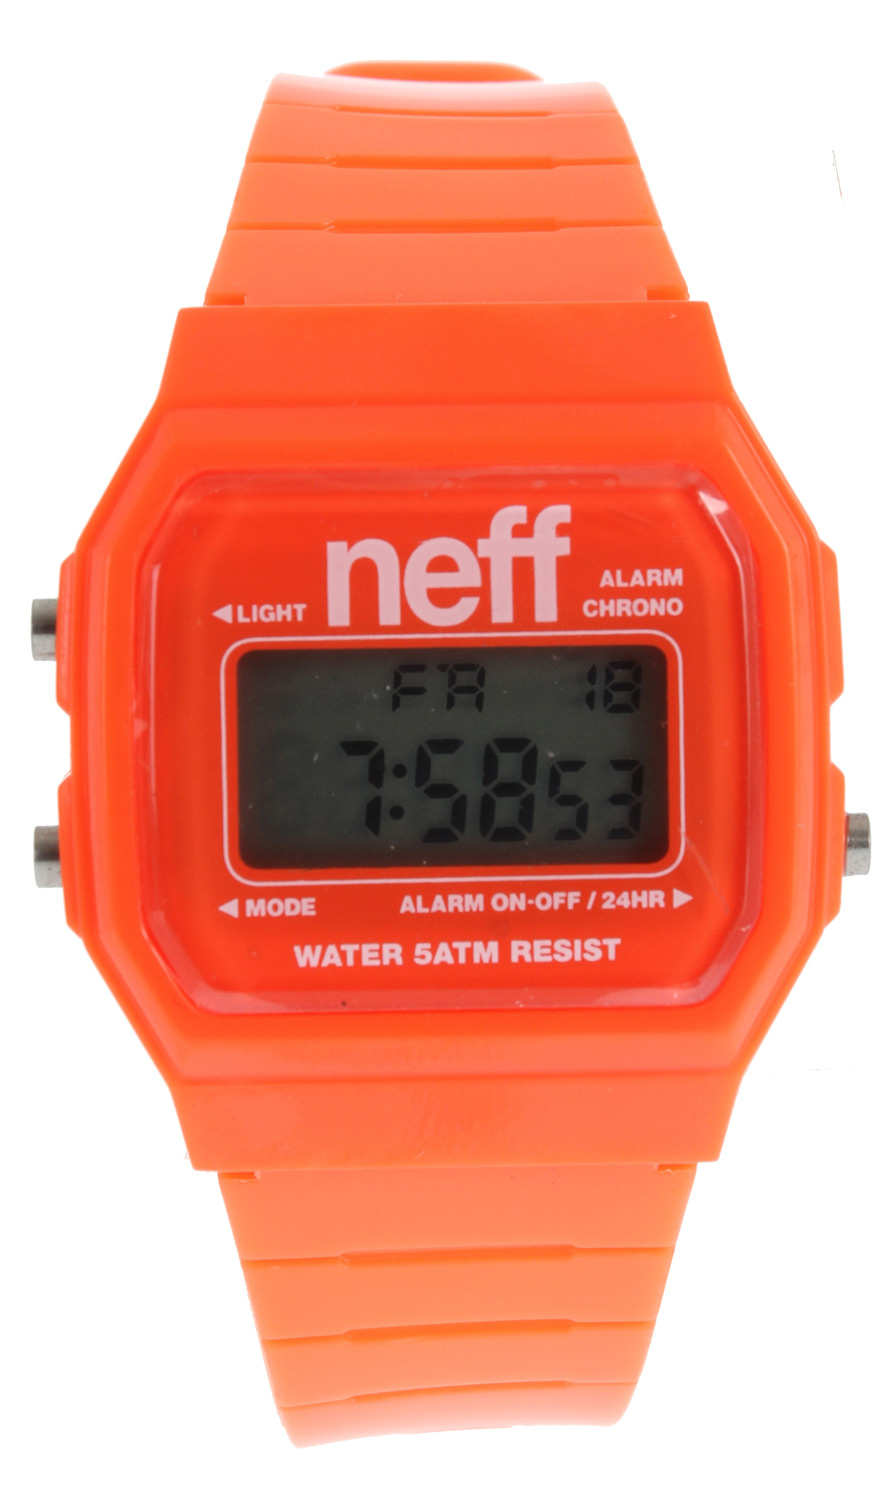 Skateboard Like a boss! High fives never looked so good!Key Features of the Neff Flava Watch: ABS case PU strap. Alarm Military Time Backlight Date Water resistant up to five meters Weight: 1 oz - $19.95